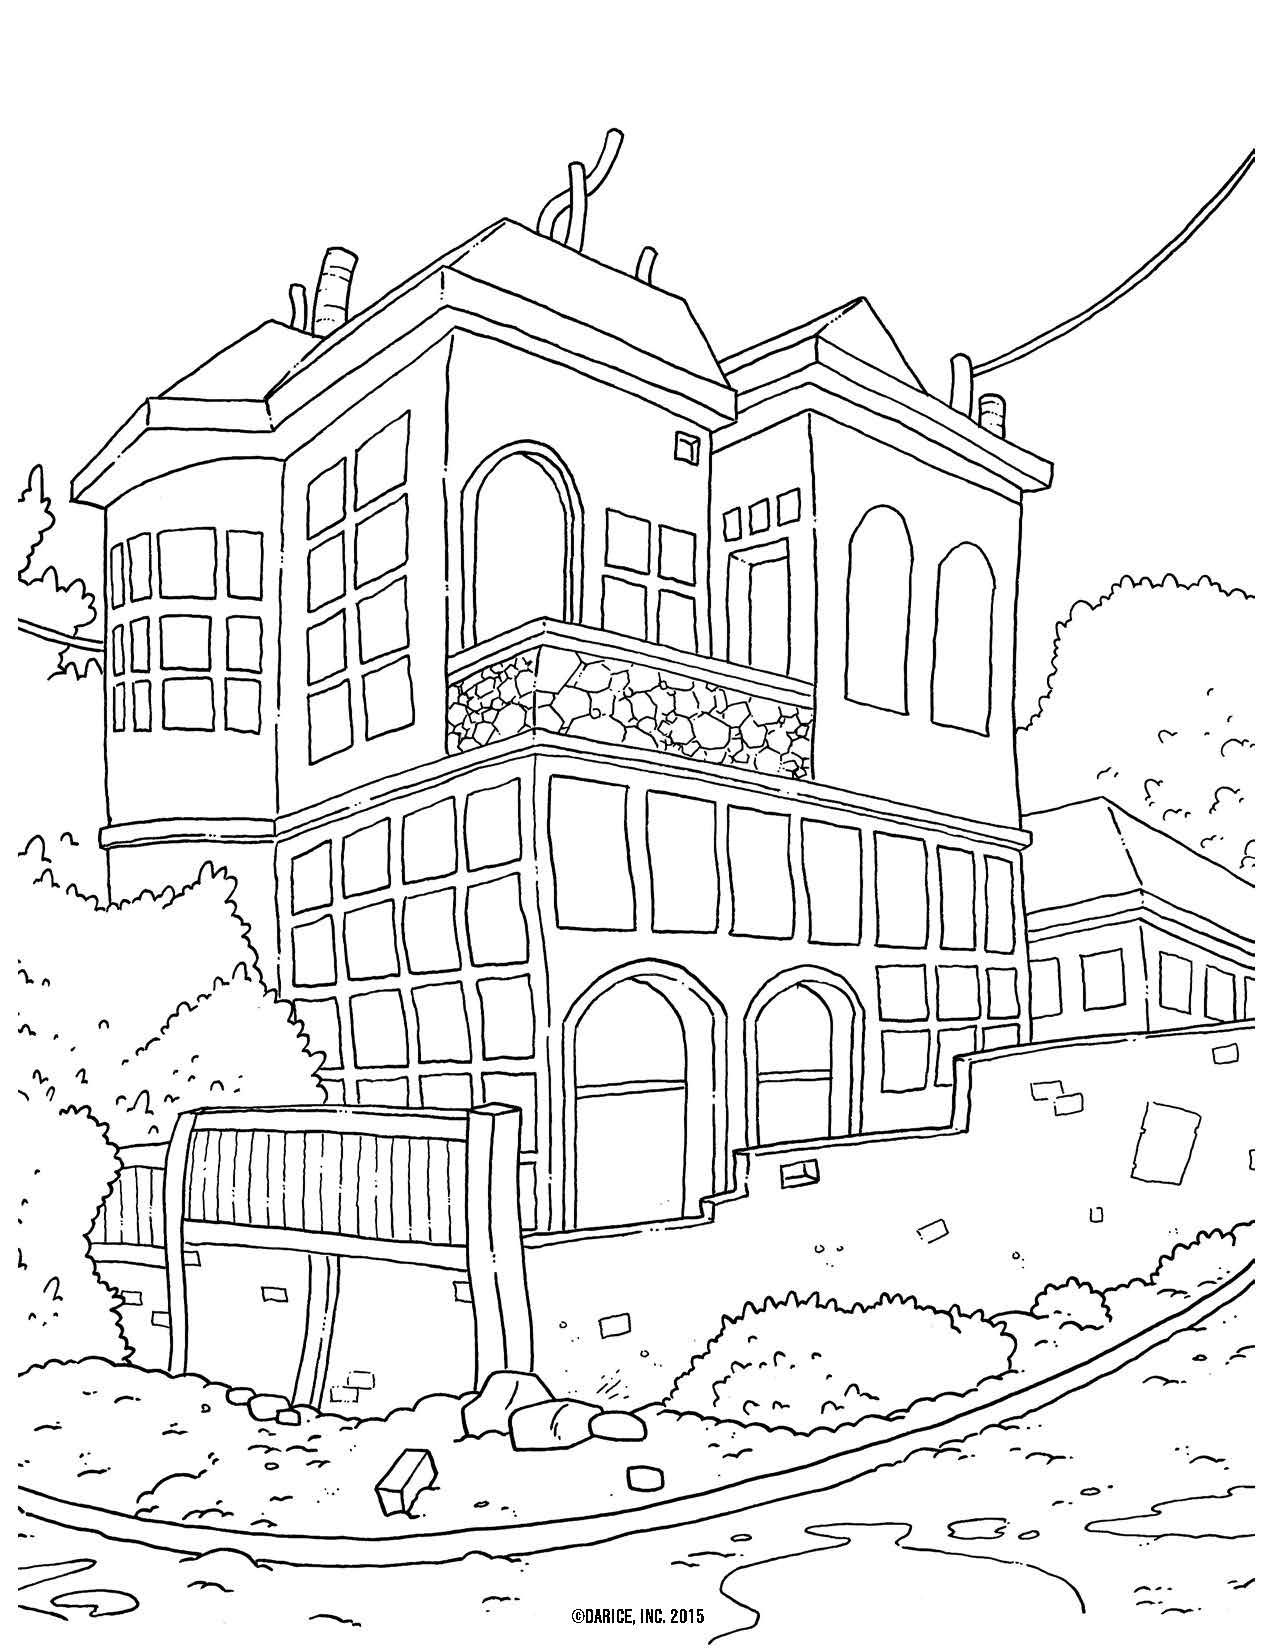 Find this pin and more on ✐adult colouringbuildingshouses cityscapeslandmarks